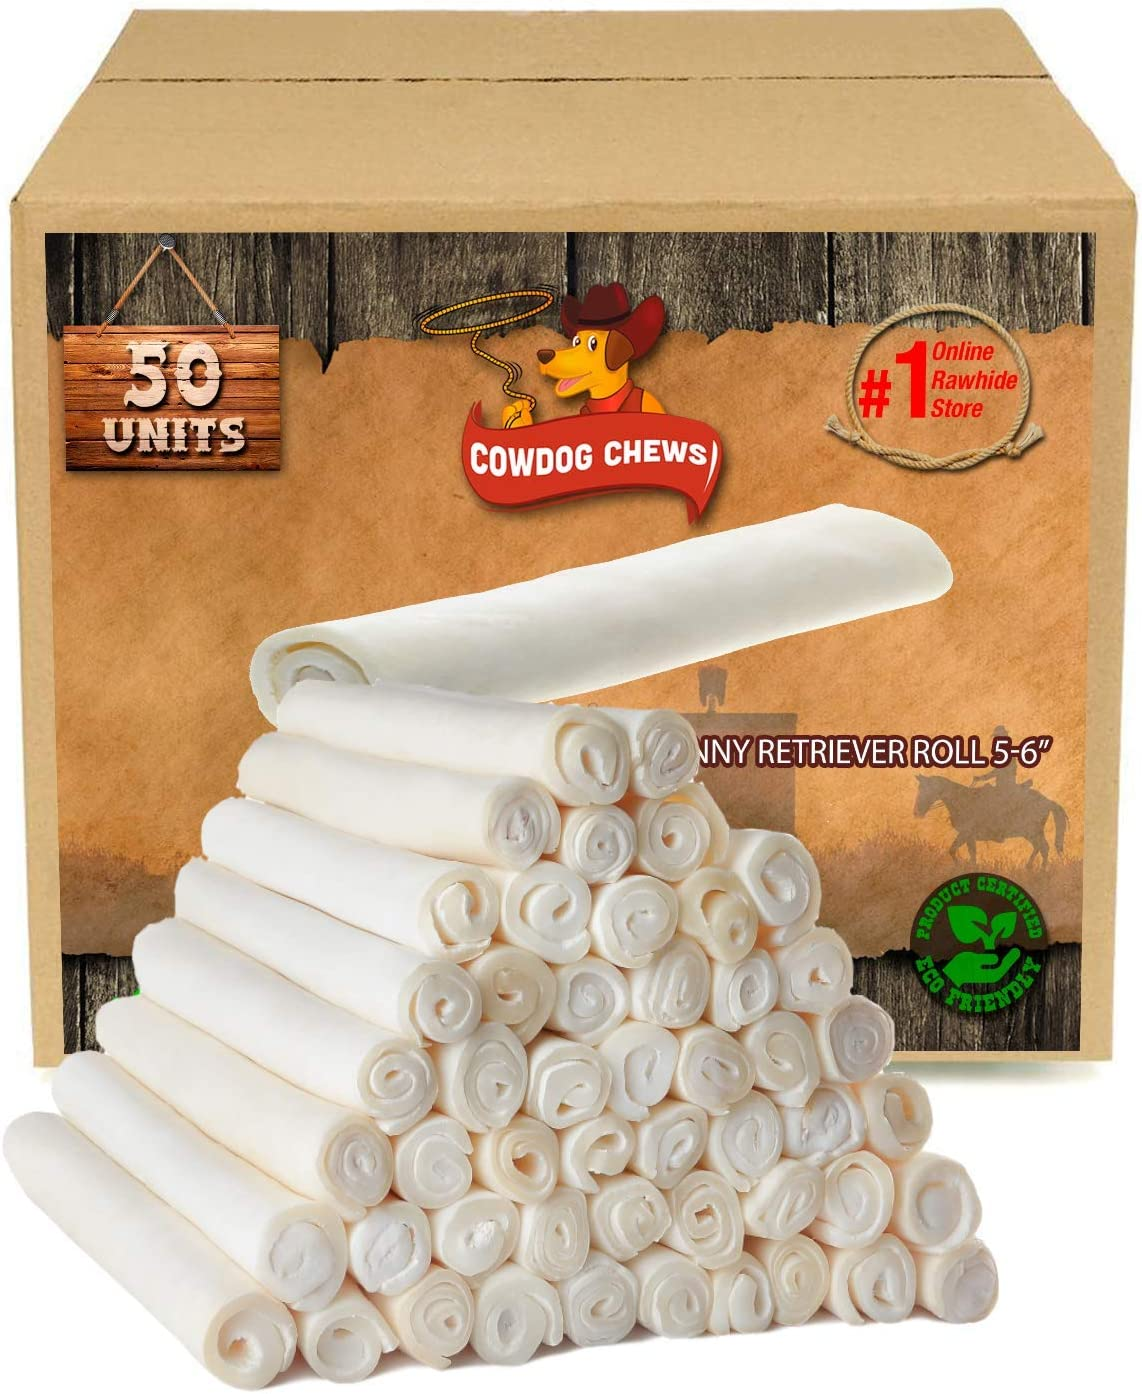 Cowdog Chews 5-6 Inches Retriever Japan's largest assortment Roll Dog 100 - Chewing Treat Manufacturer direct delivery